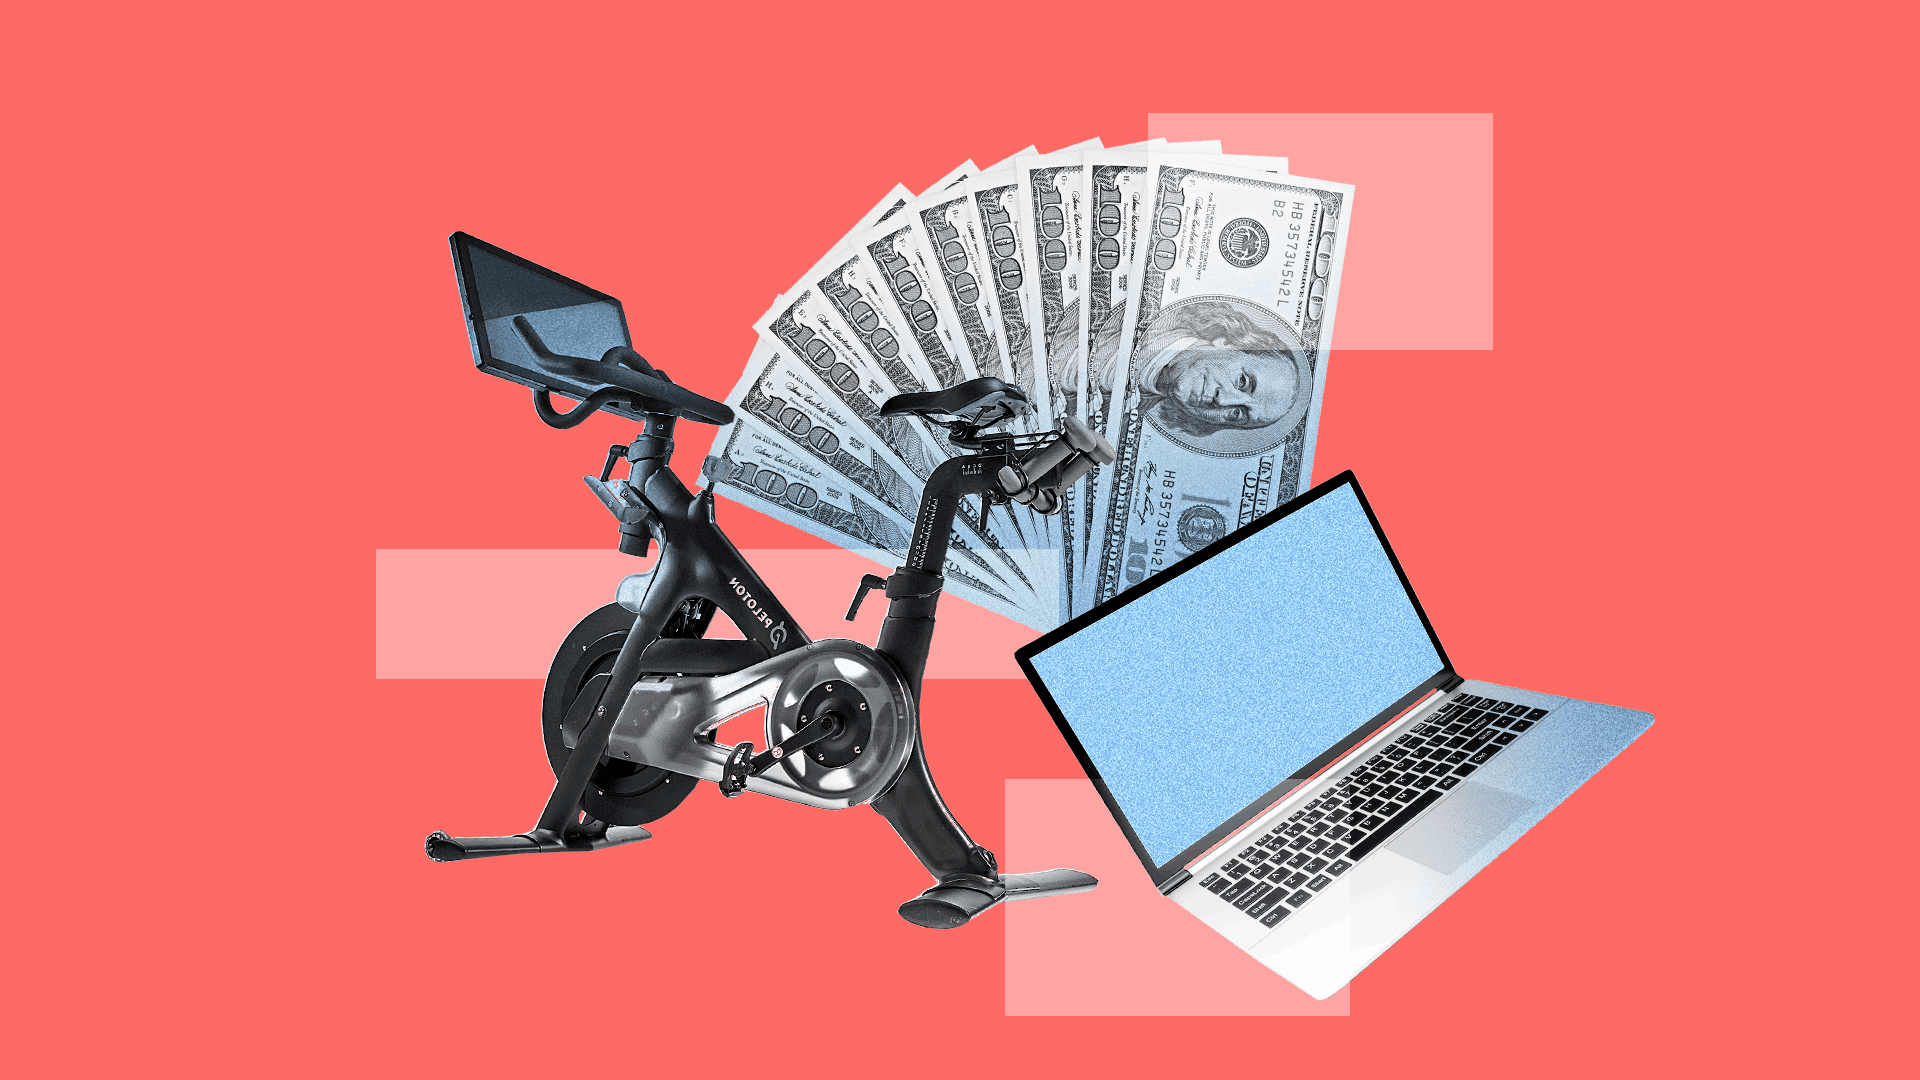 An illustration of an elliptical, laptop and money.